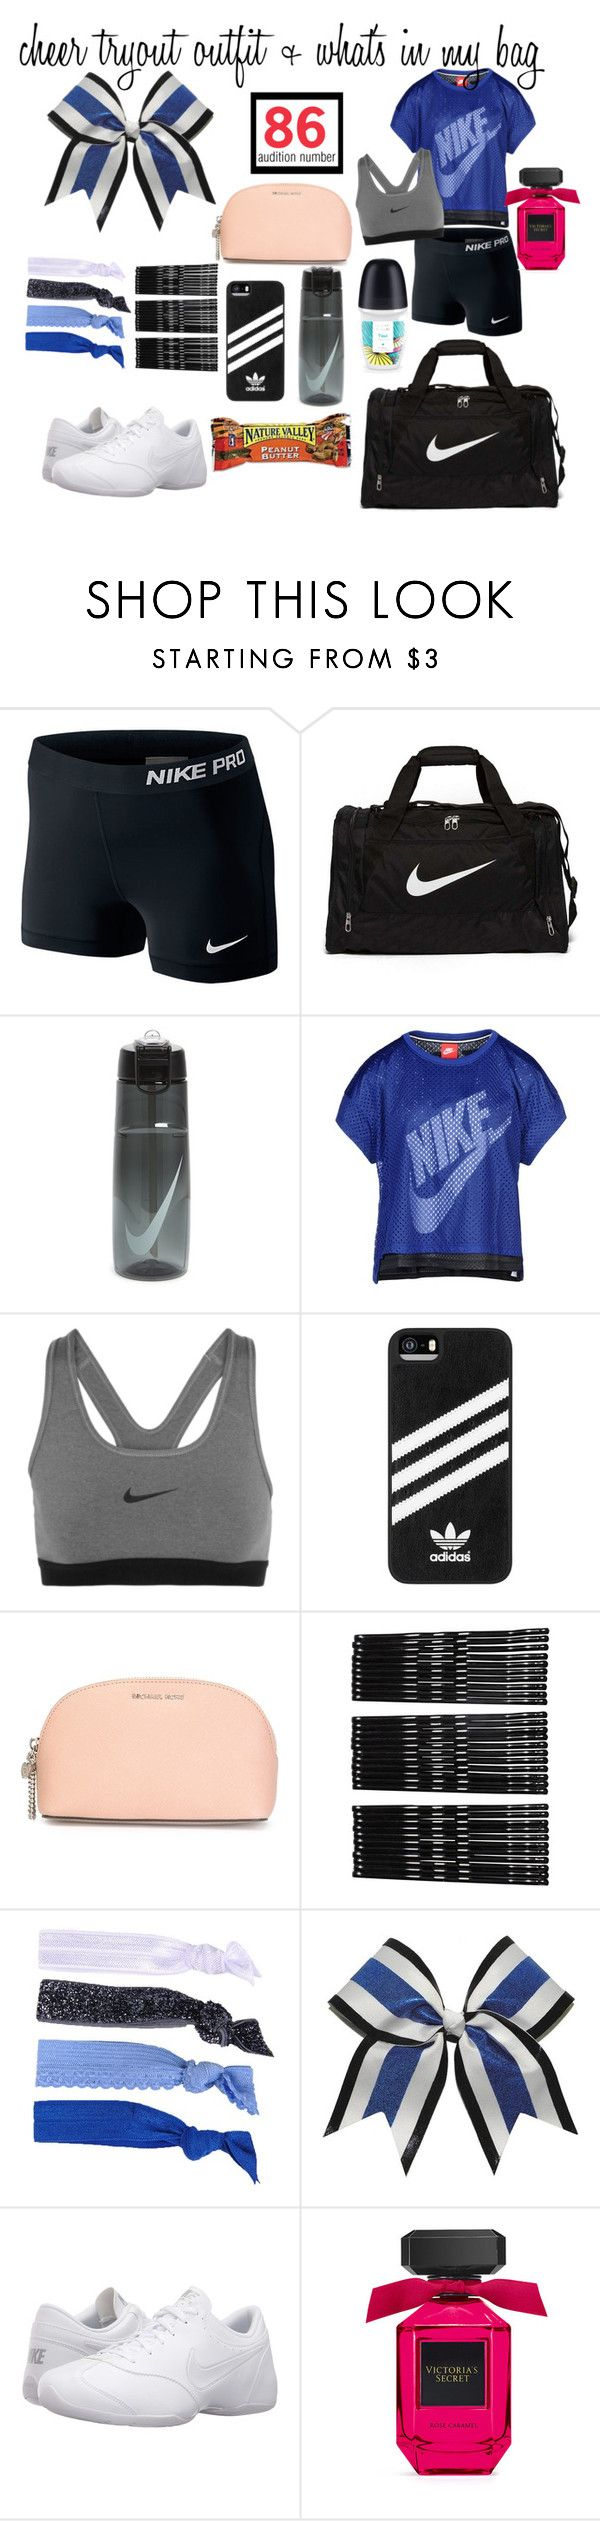 """""""cheer tryout outfit + what's in my bag"""" by brooklynwhtie on Polyvore featuring NIKE, adidas, MICHAEL Michael Kors, Monki and Glam Bands"""